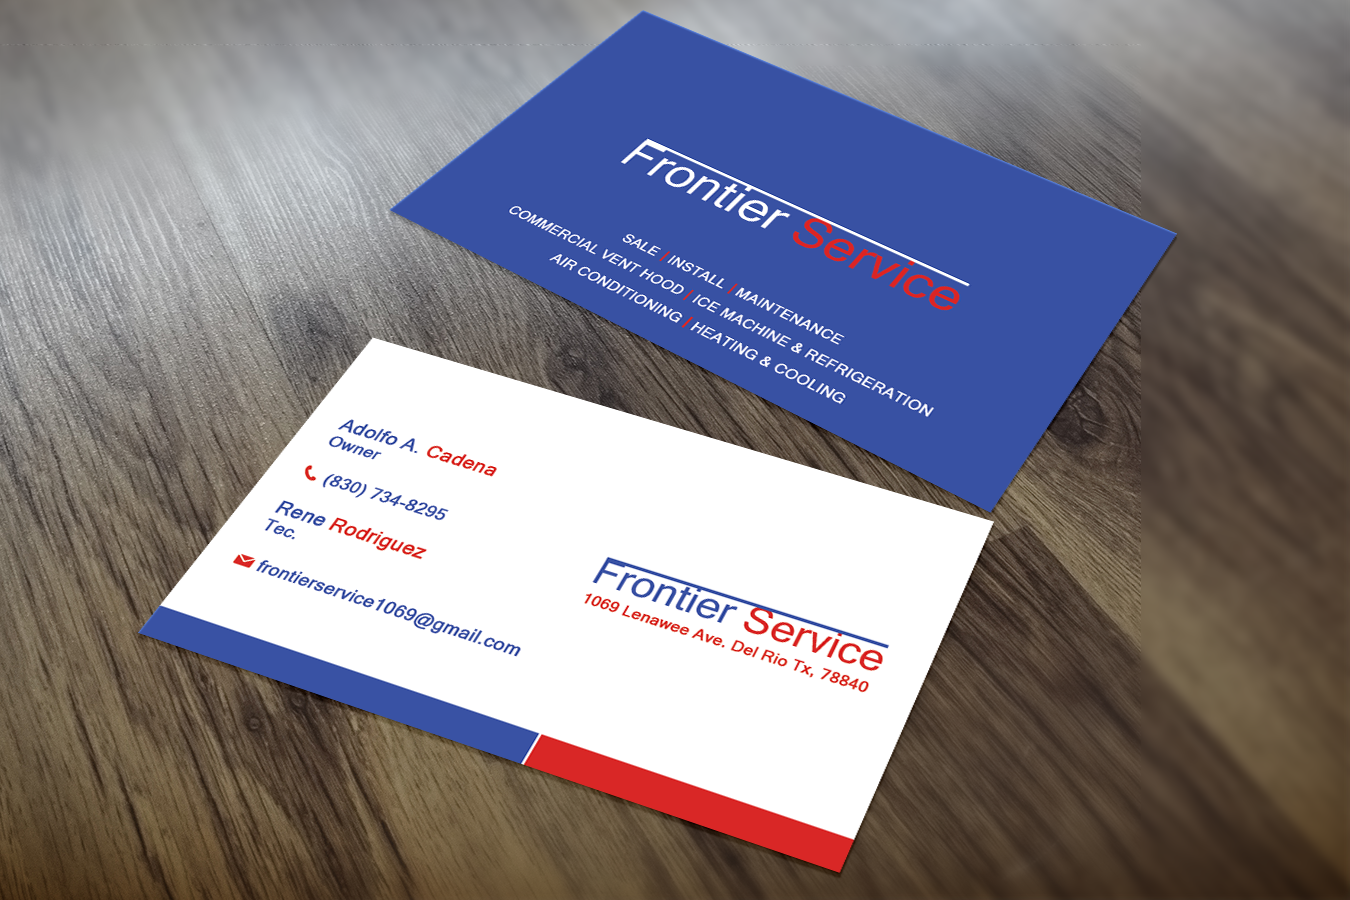 Air conditioning business card design for a company by sajin air conditioning business card design for a company in united states design 5906565 colourmoves